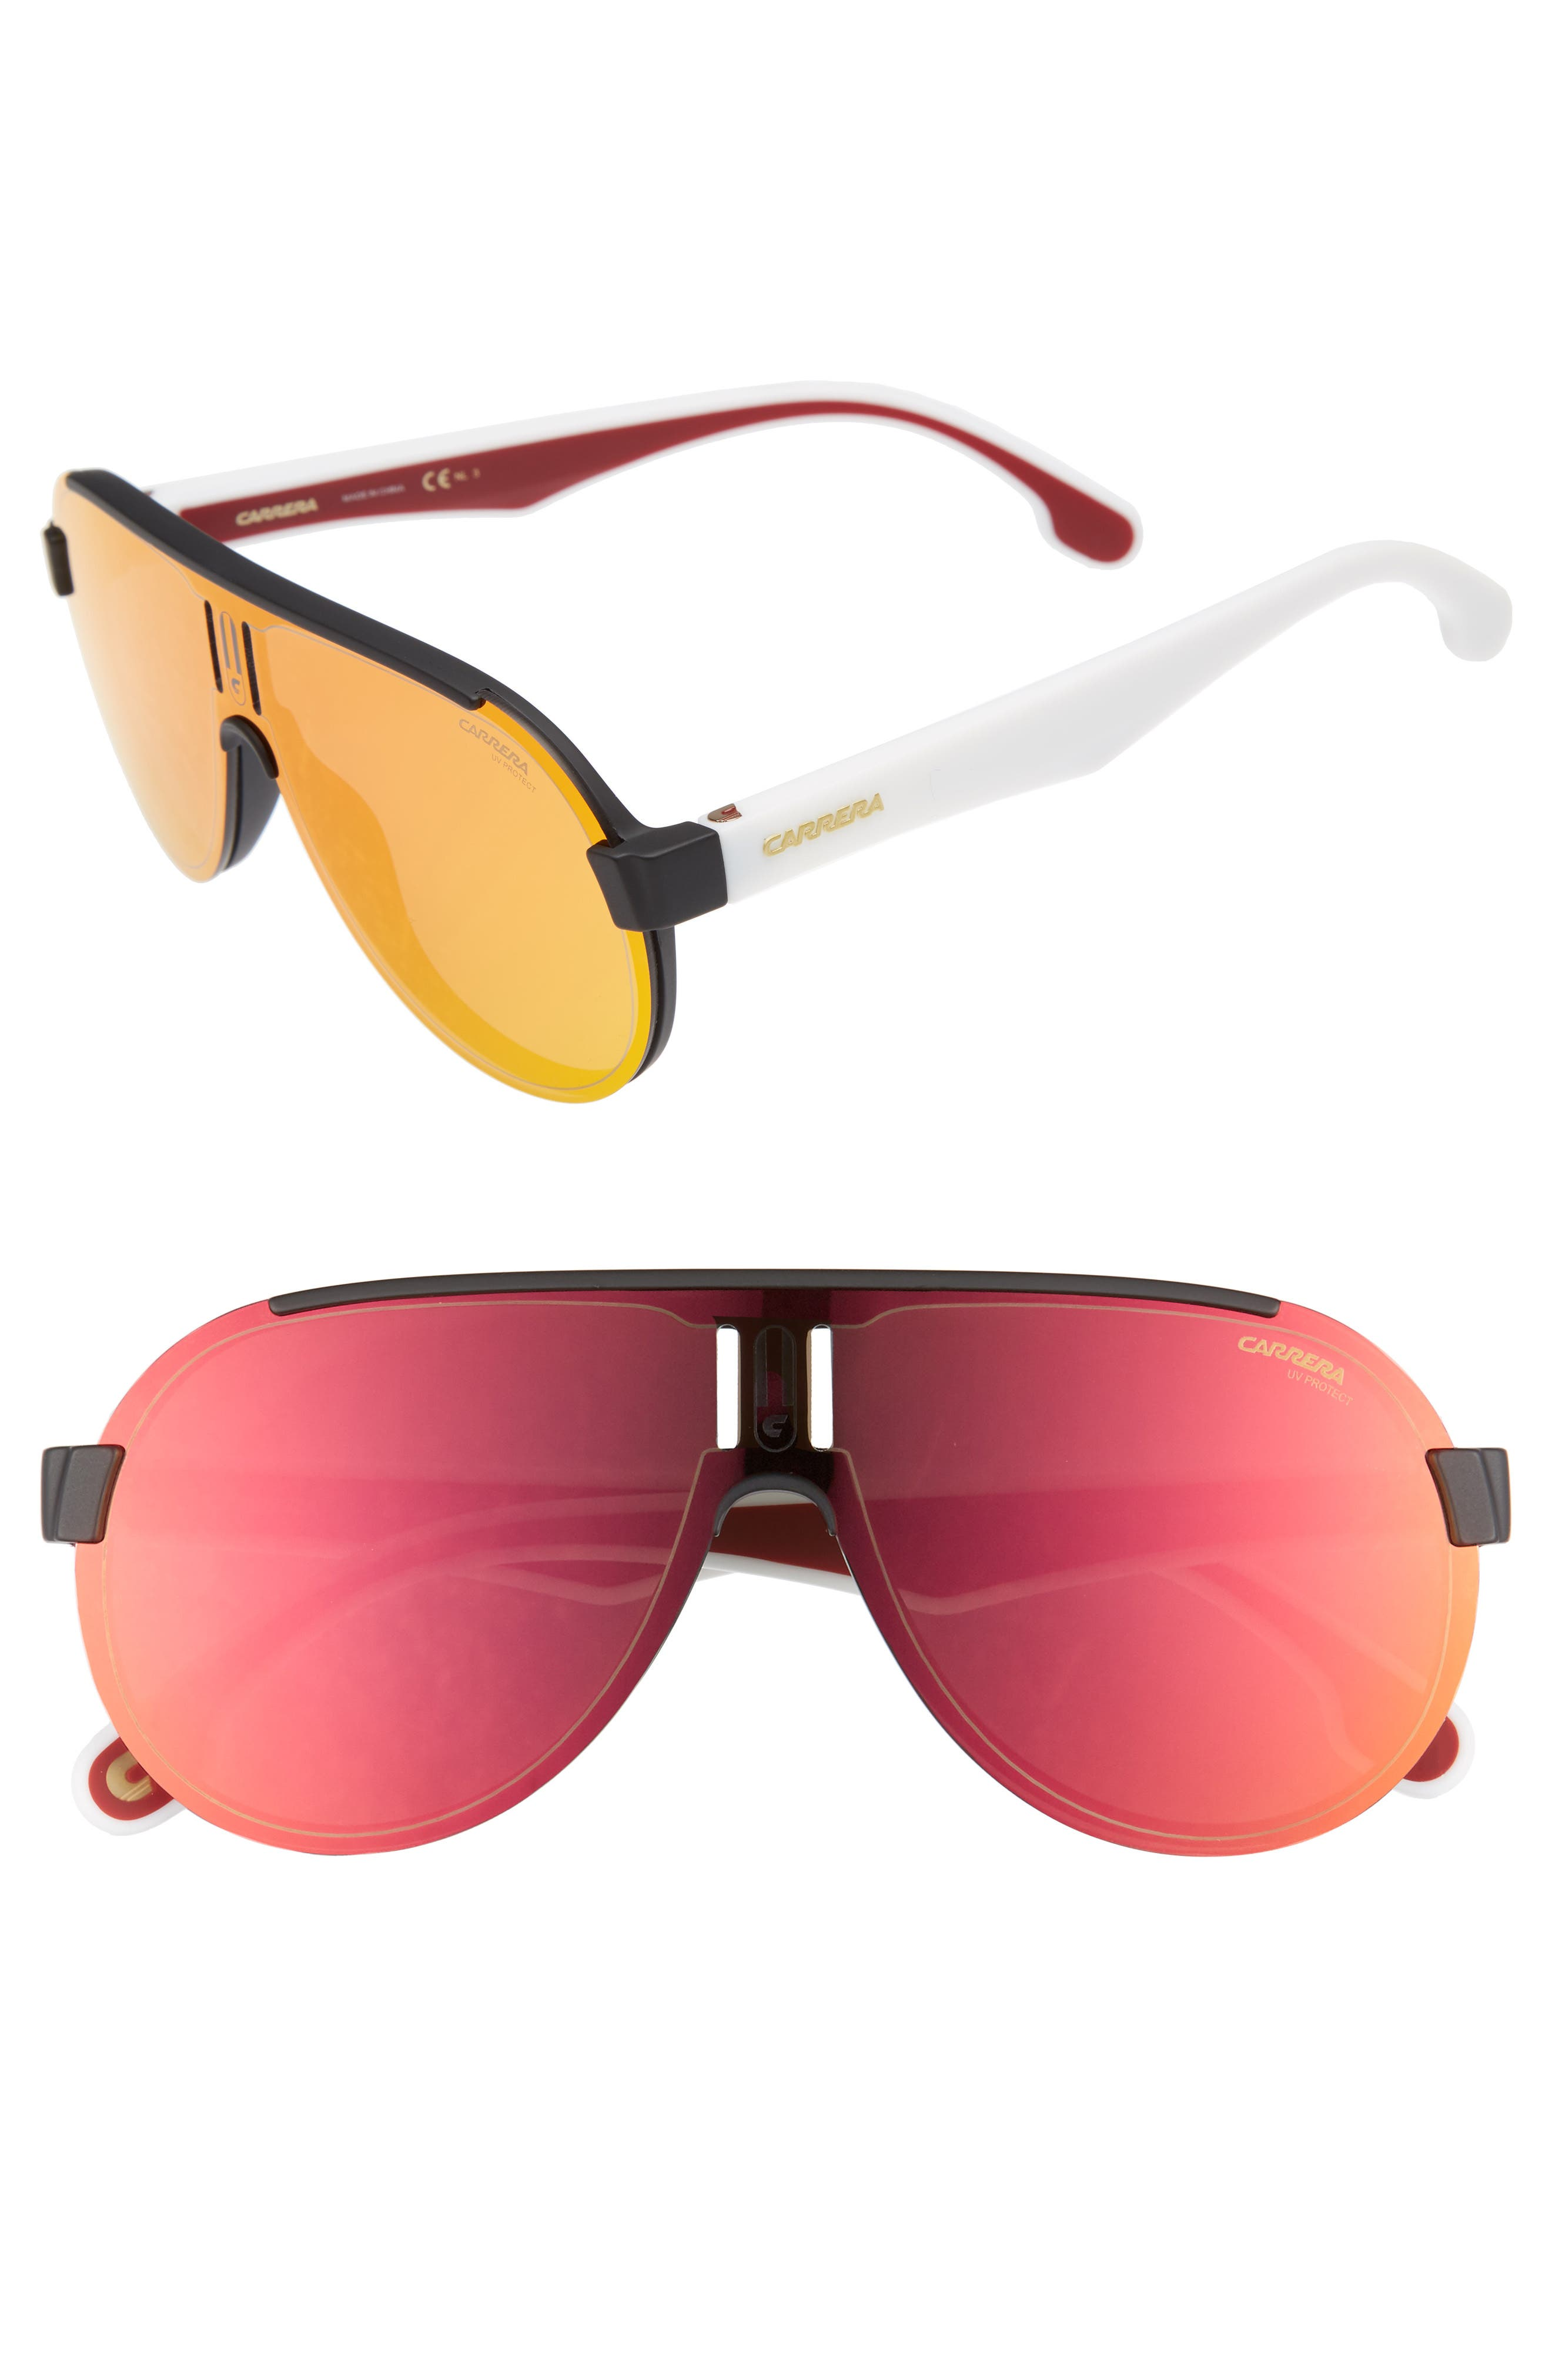 99mm Shield Sunglasses,                             Main thumbnail 1, color,                             MATTE BLACK WHITE/ RED MIRROR